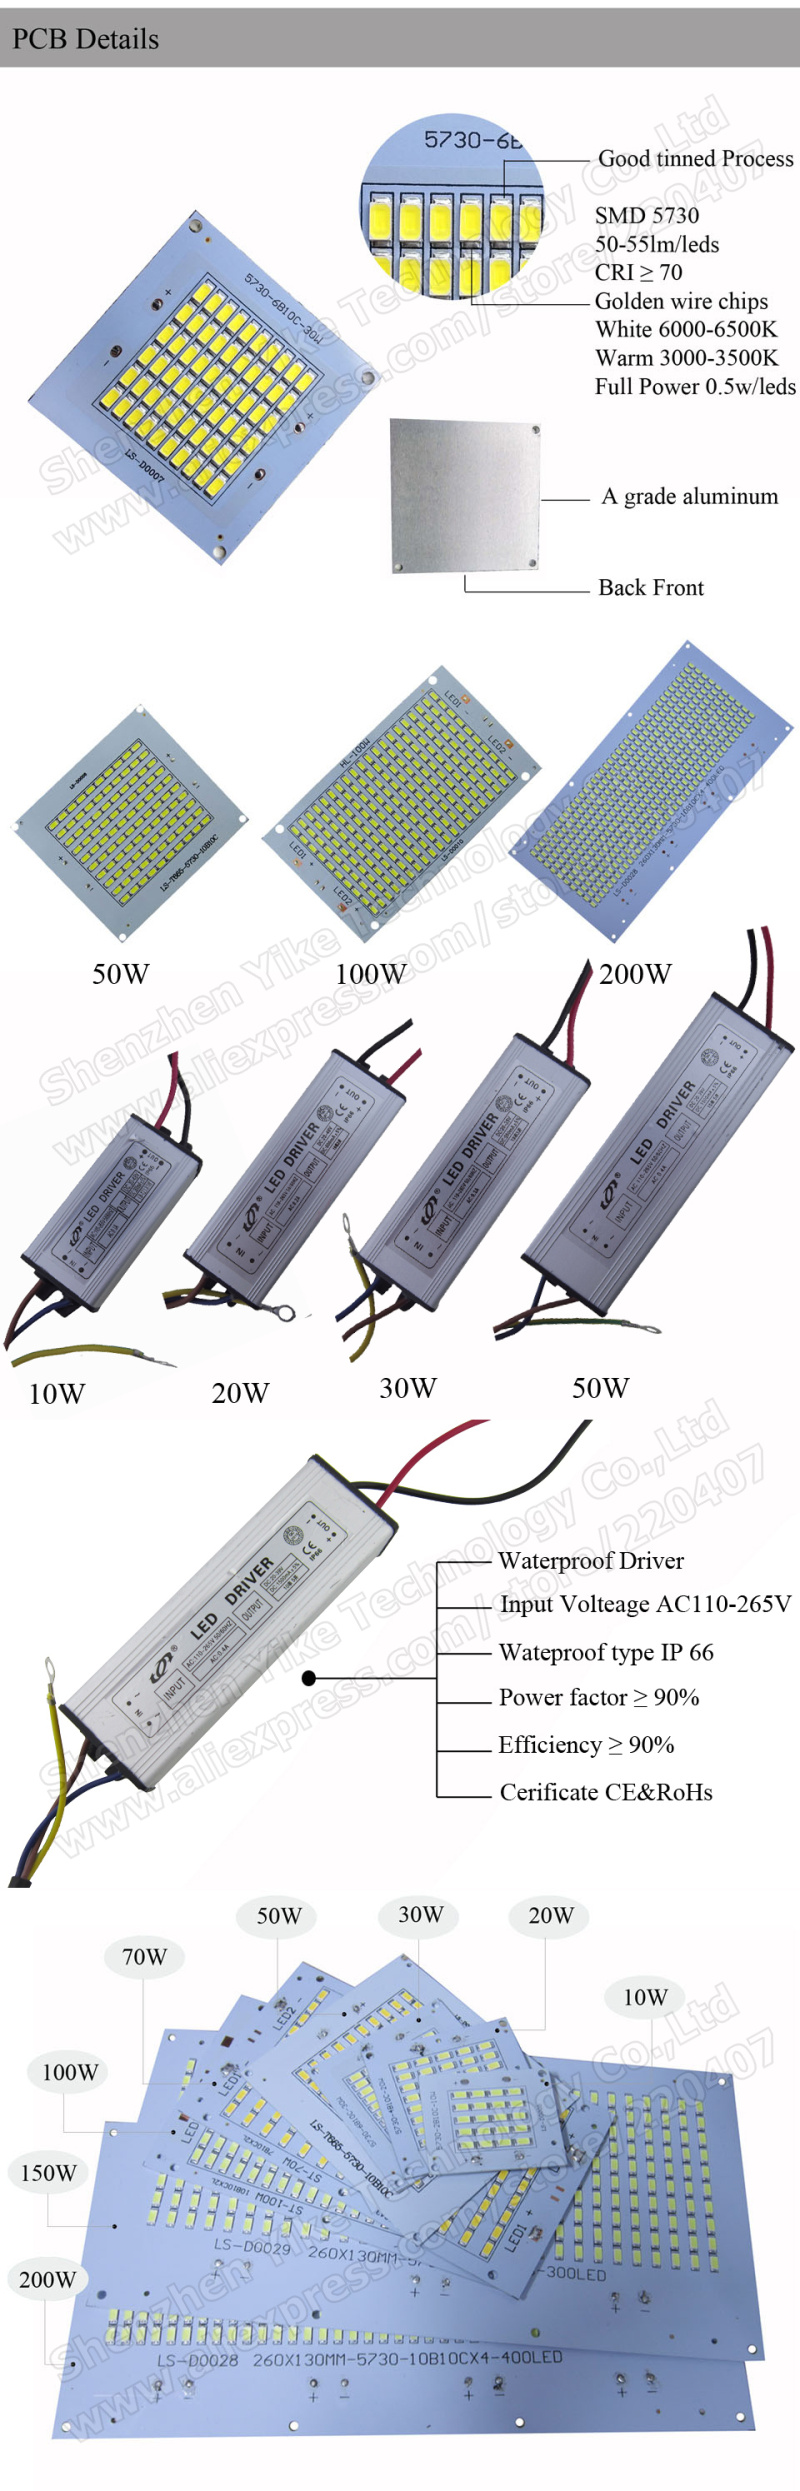 10-200W--PCB---detailsWITH-DRIVER-